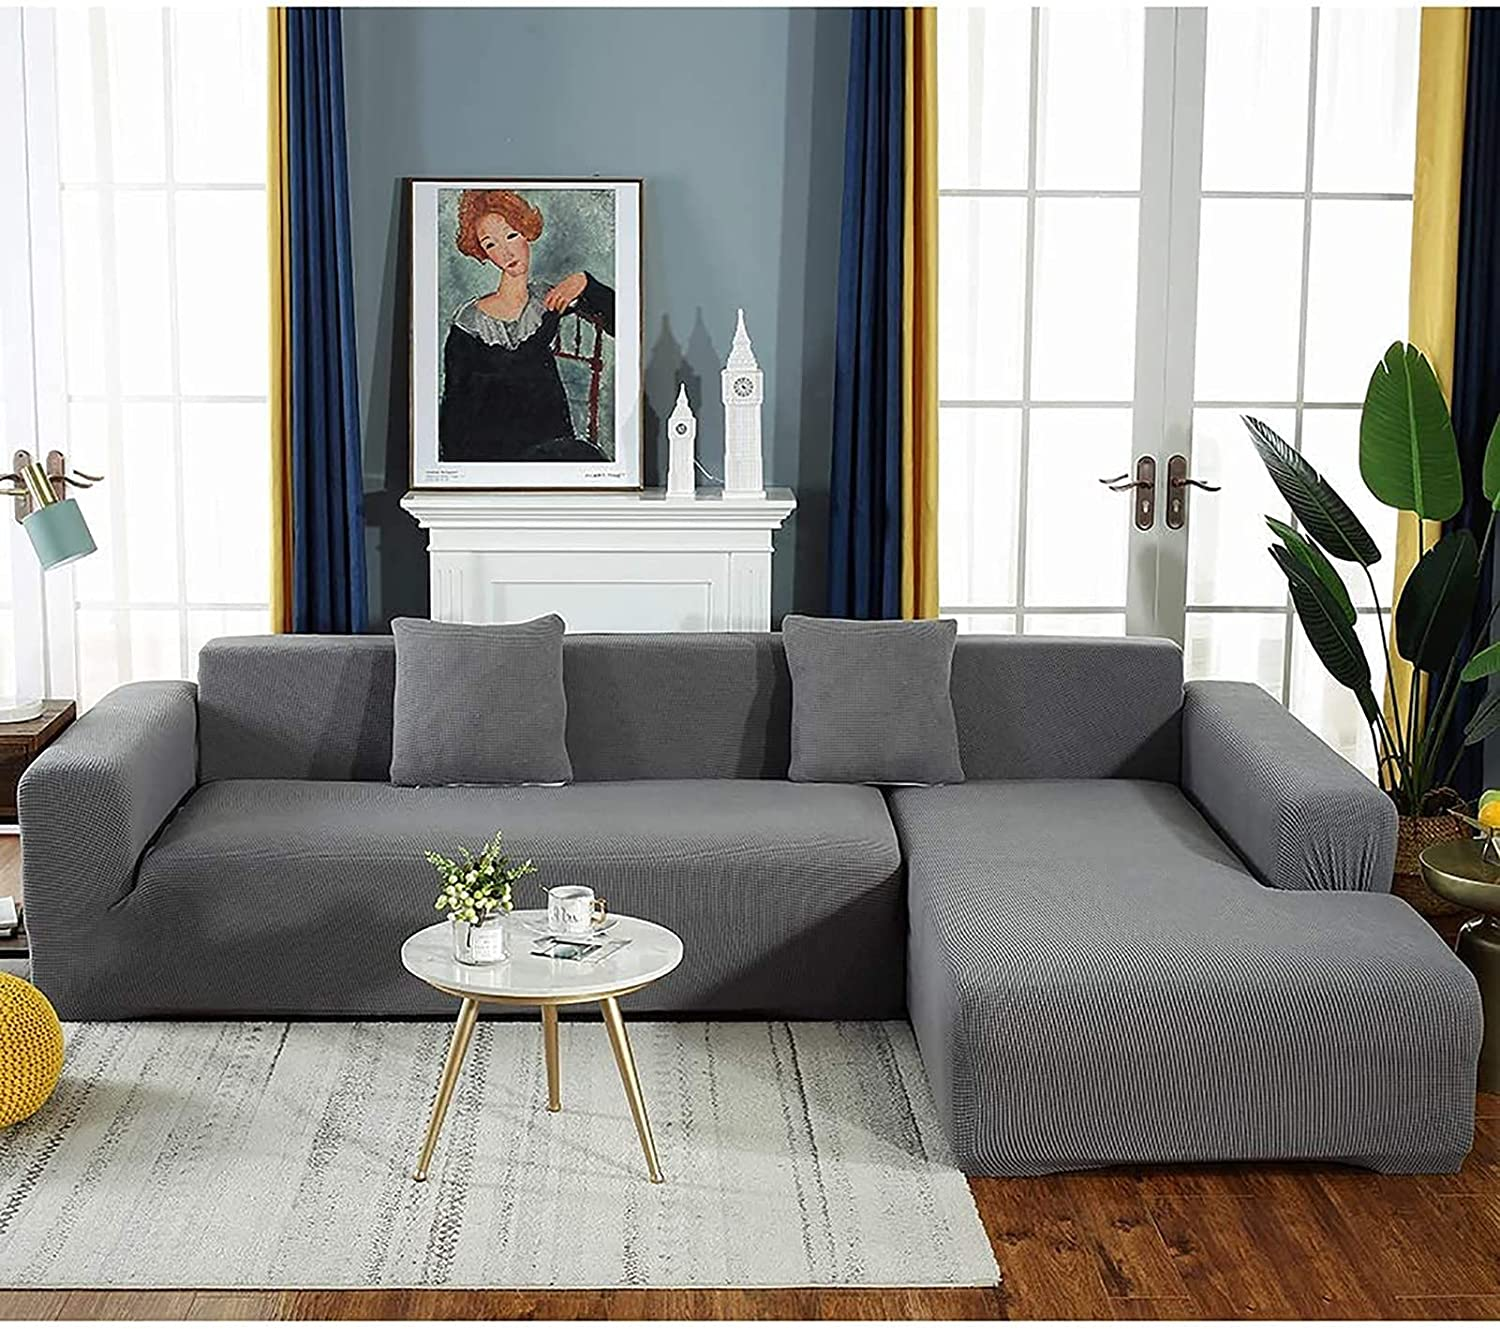 HJlife L Shape Sofa New item Covers 1 2 Seater 4 Thick Co Luxury 3 National products Couch